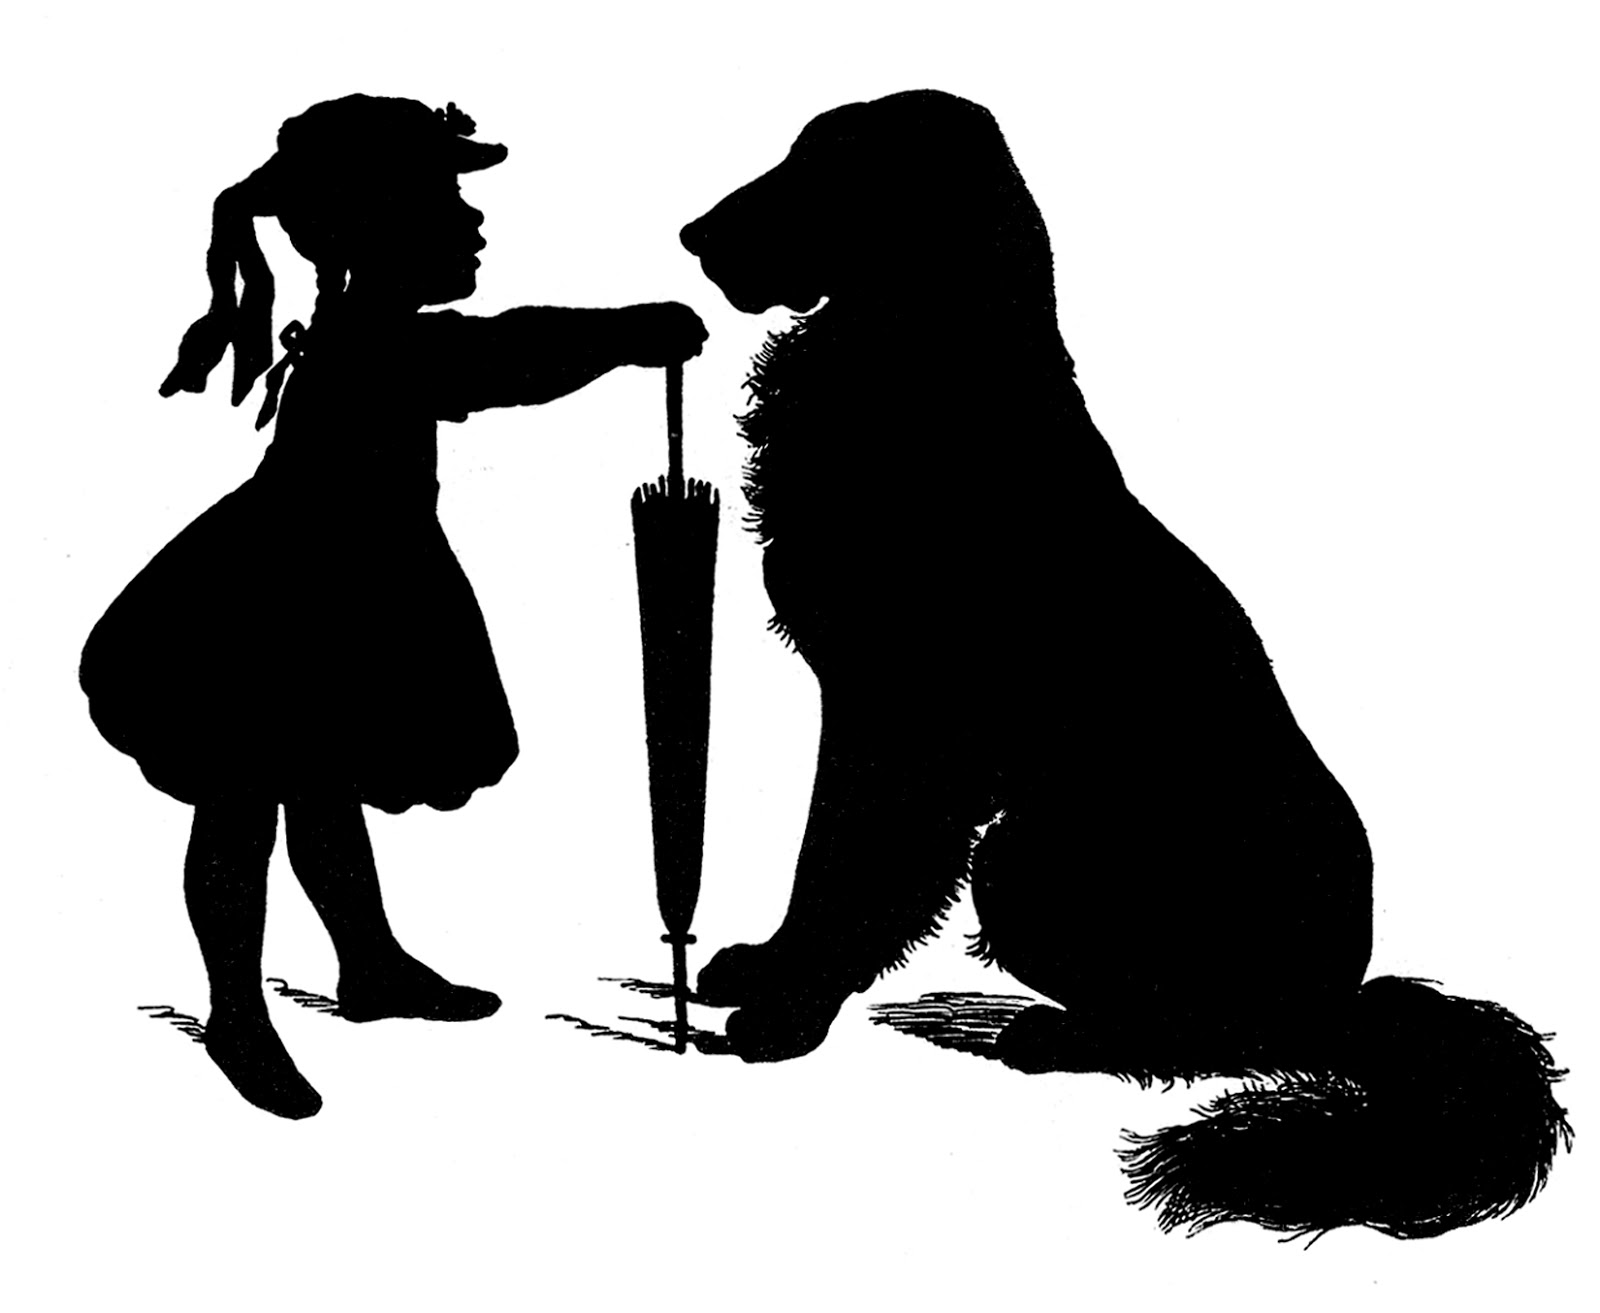 Dog and girl clipart black and white transparent stock Free Vector Download - Silhouette - Girl with Dog - The Graphics Fairy transparent stock